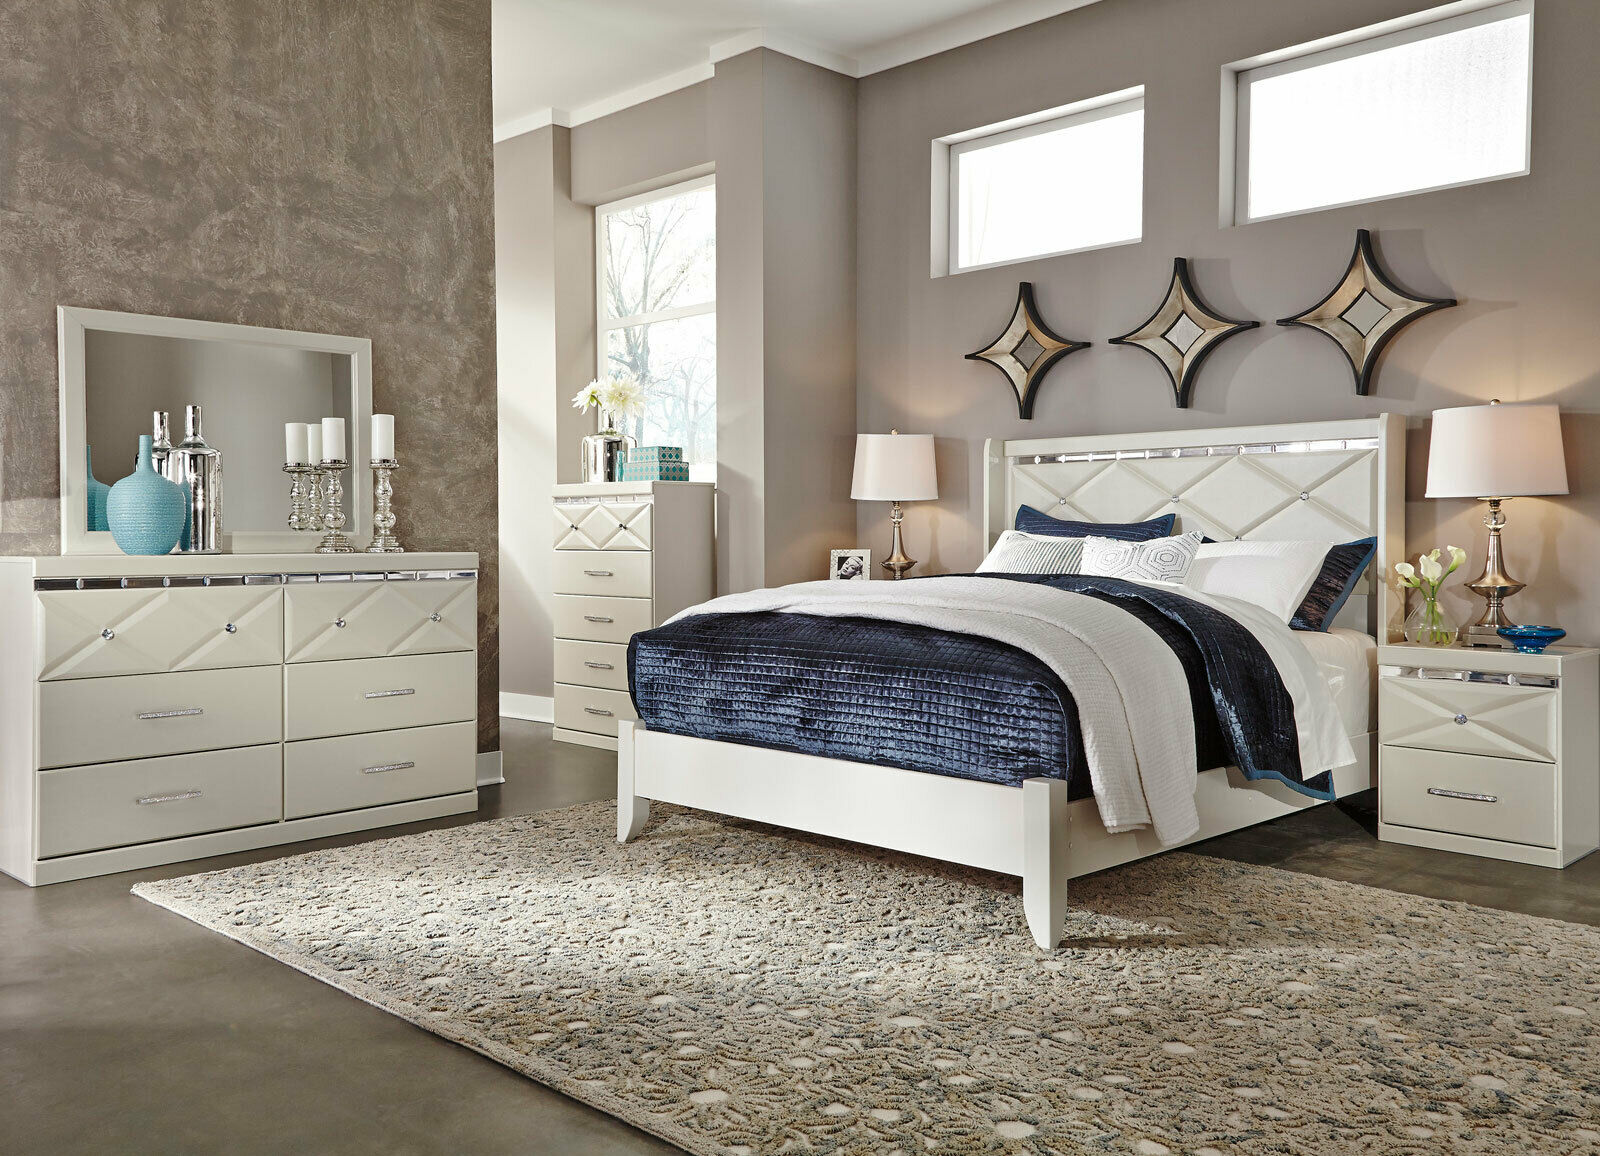 Modern White 5 pieces Bedroom Set with King Bed Dresser Mirror Nightstands  IA5P